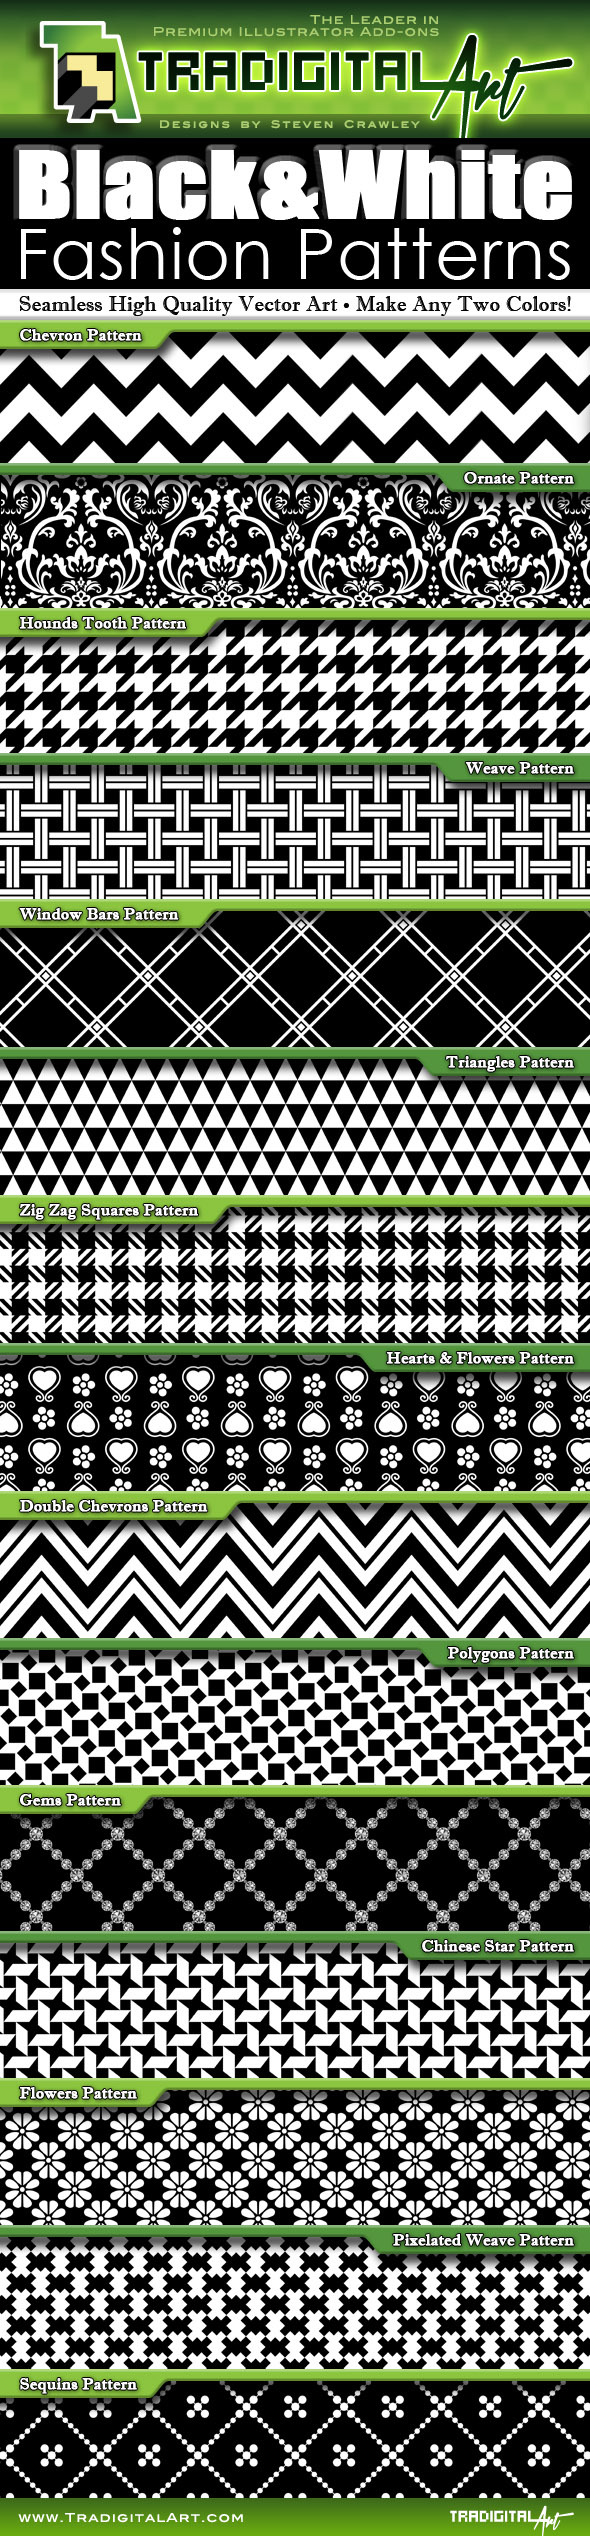 Black & White Fashion Patterns - Miscellaneous Textures / Fills / Patterns